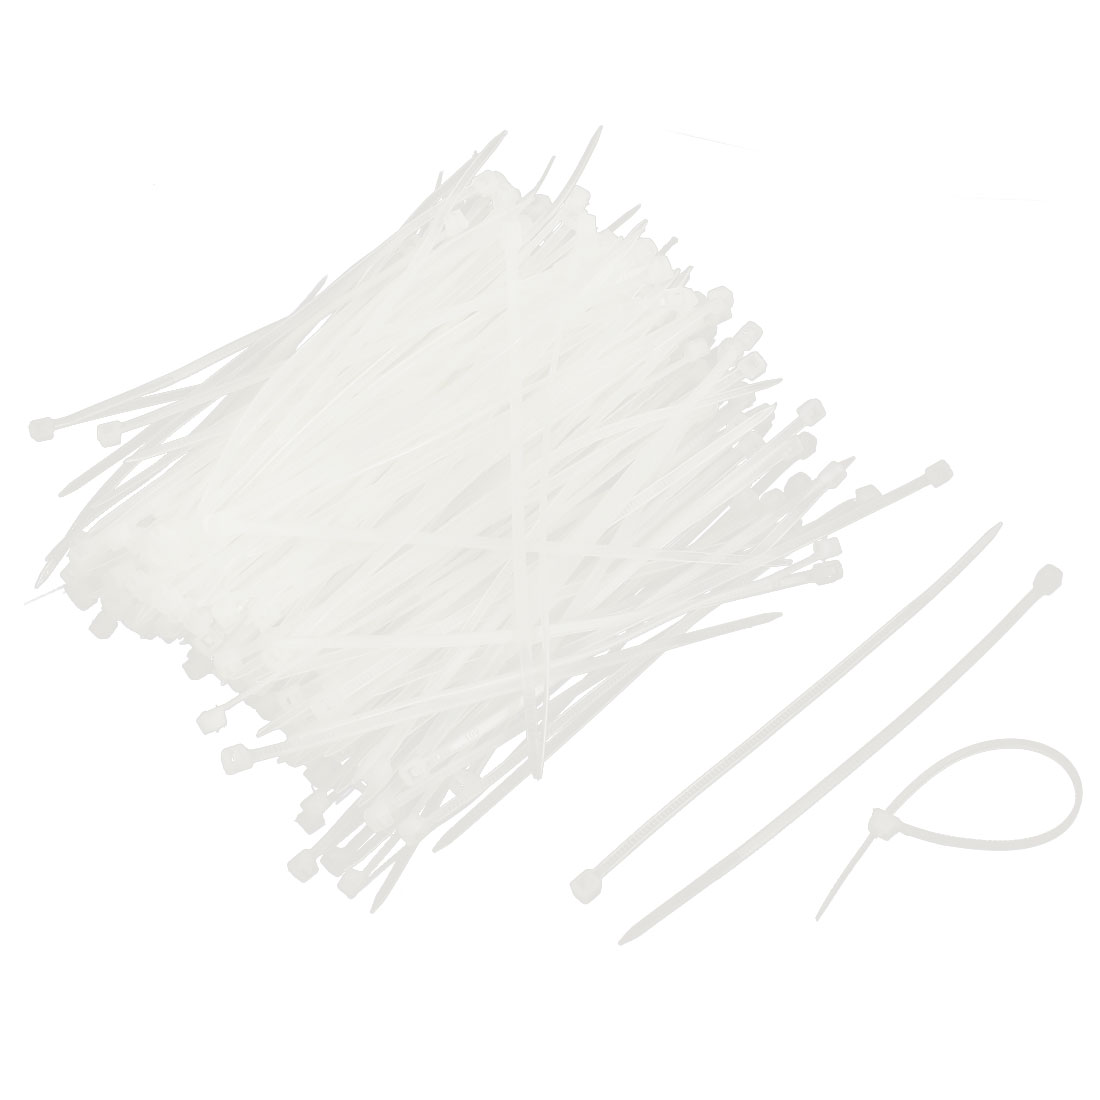 2mm x 100mm Self-locking Nylon Cable Zip Wire Tie White 1000 Pcs